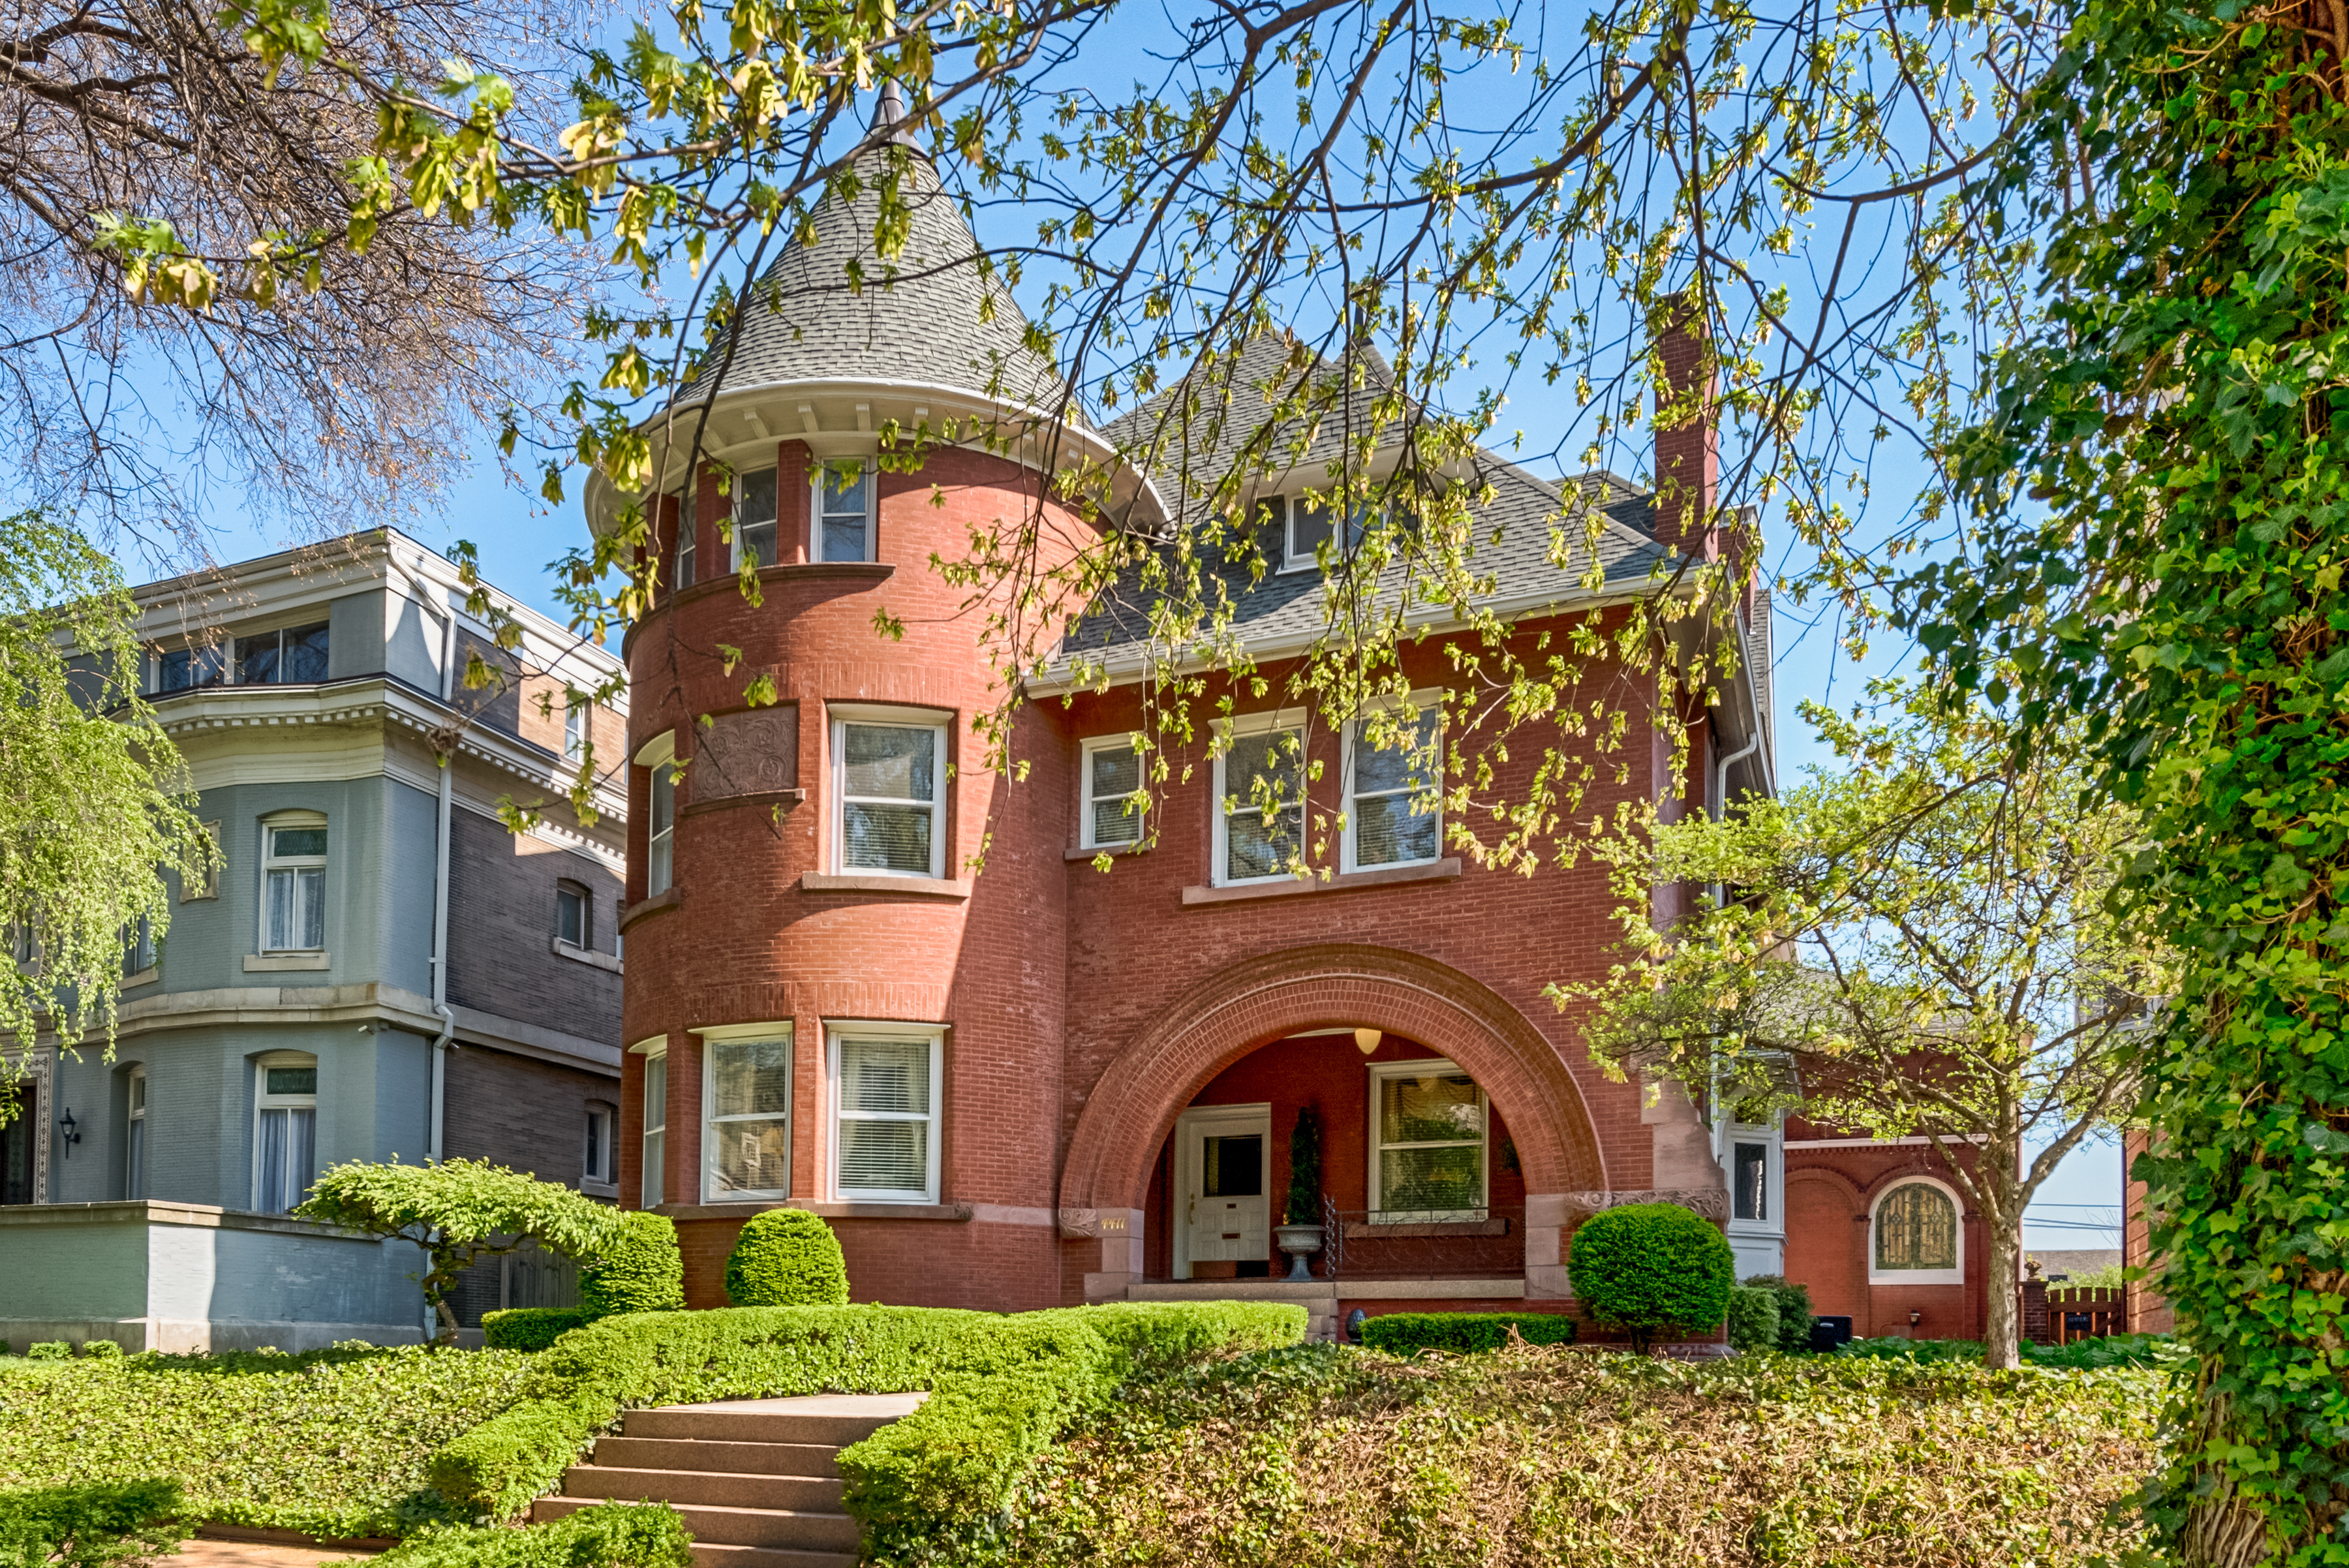 Stylish CWE Homes Archives | ST LOUIS STYLE